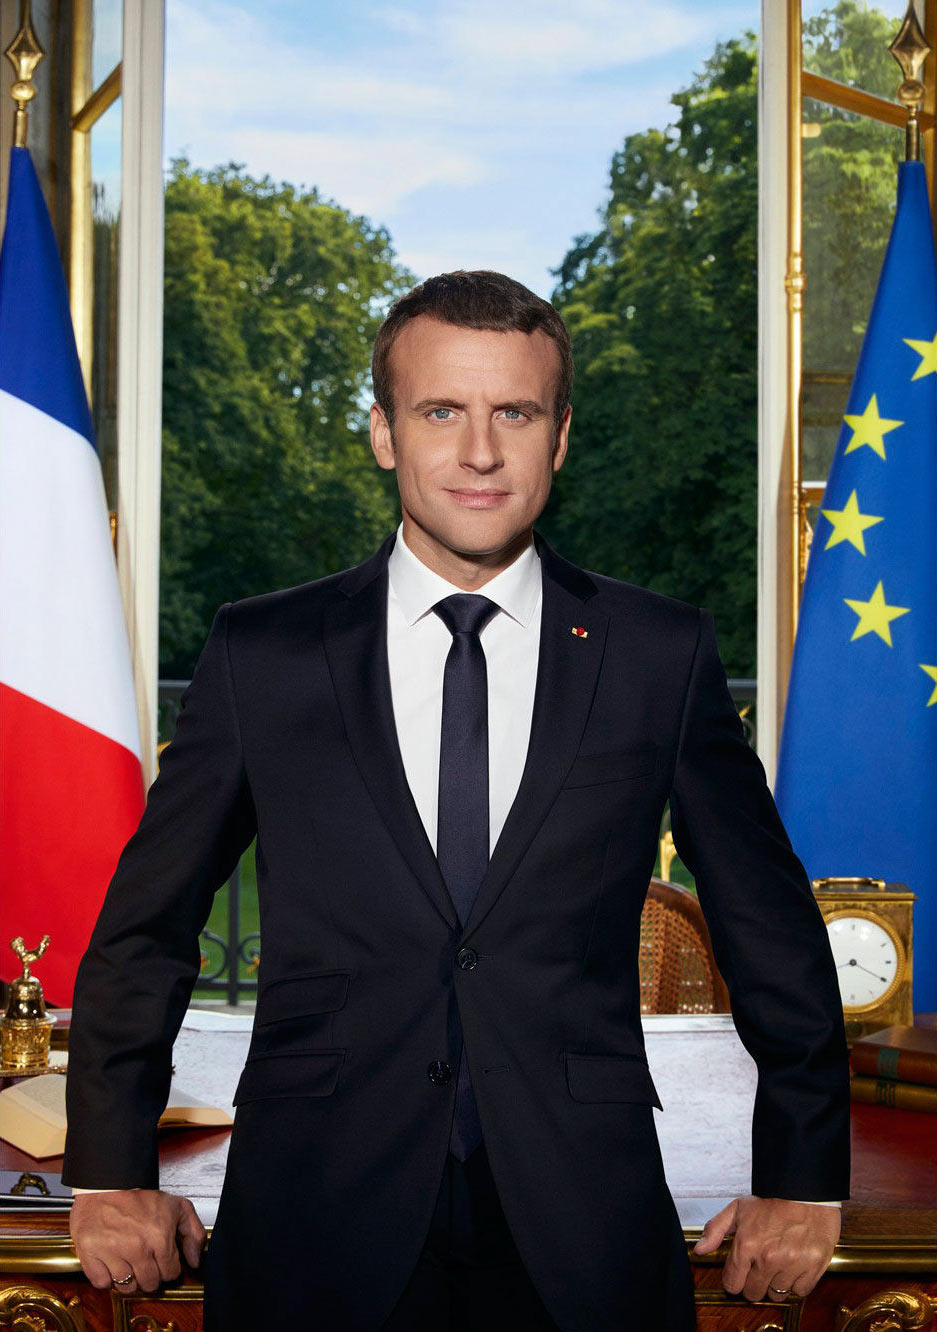 portrait-officiel-Emmanuel-Macron-to-become-agence